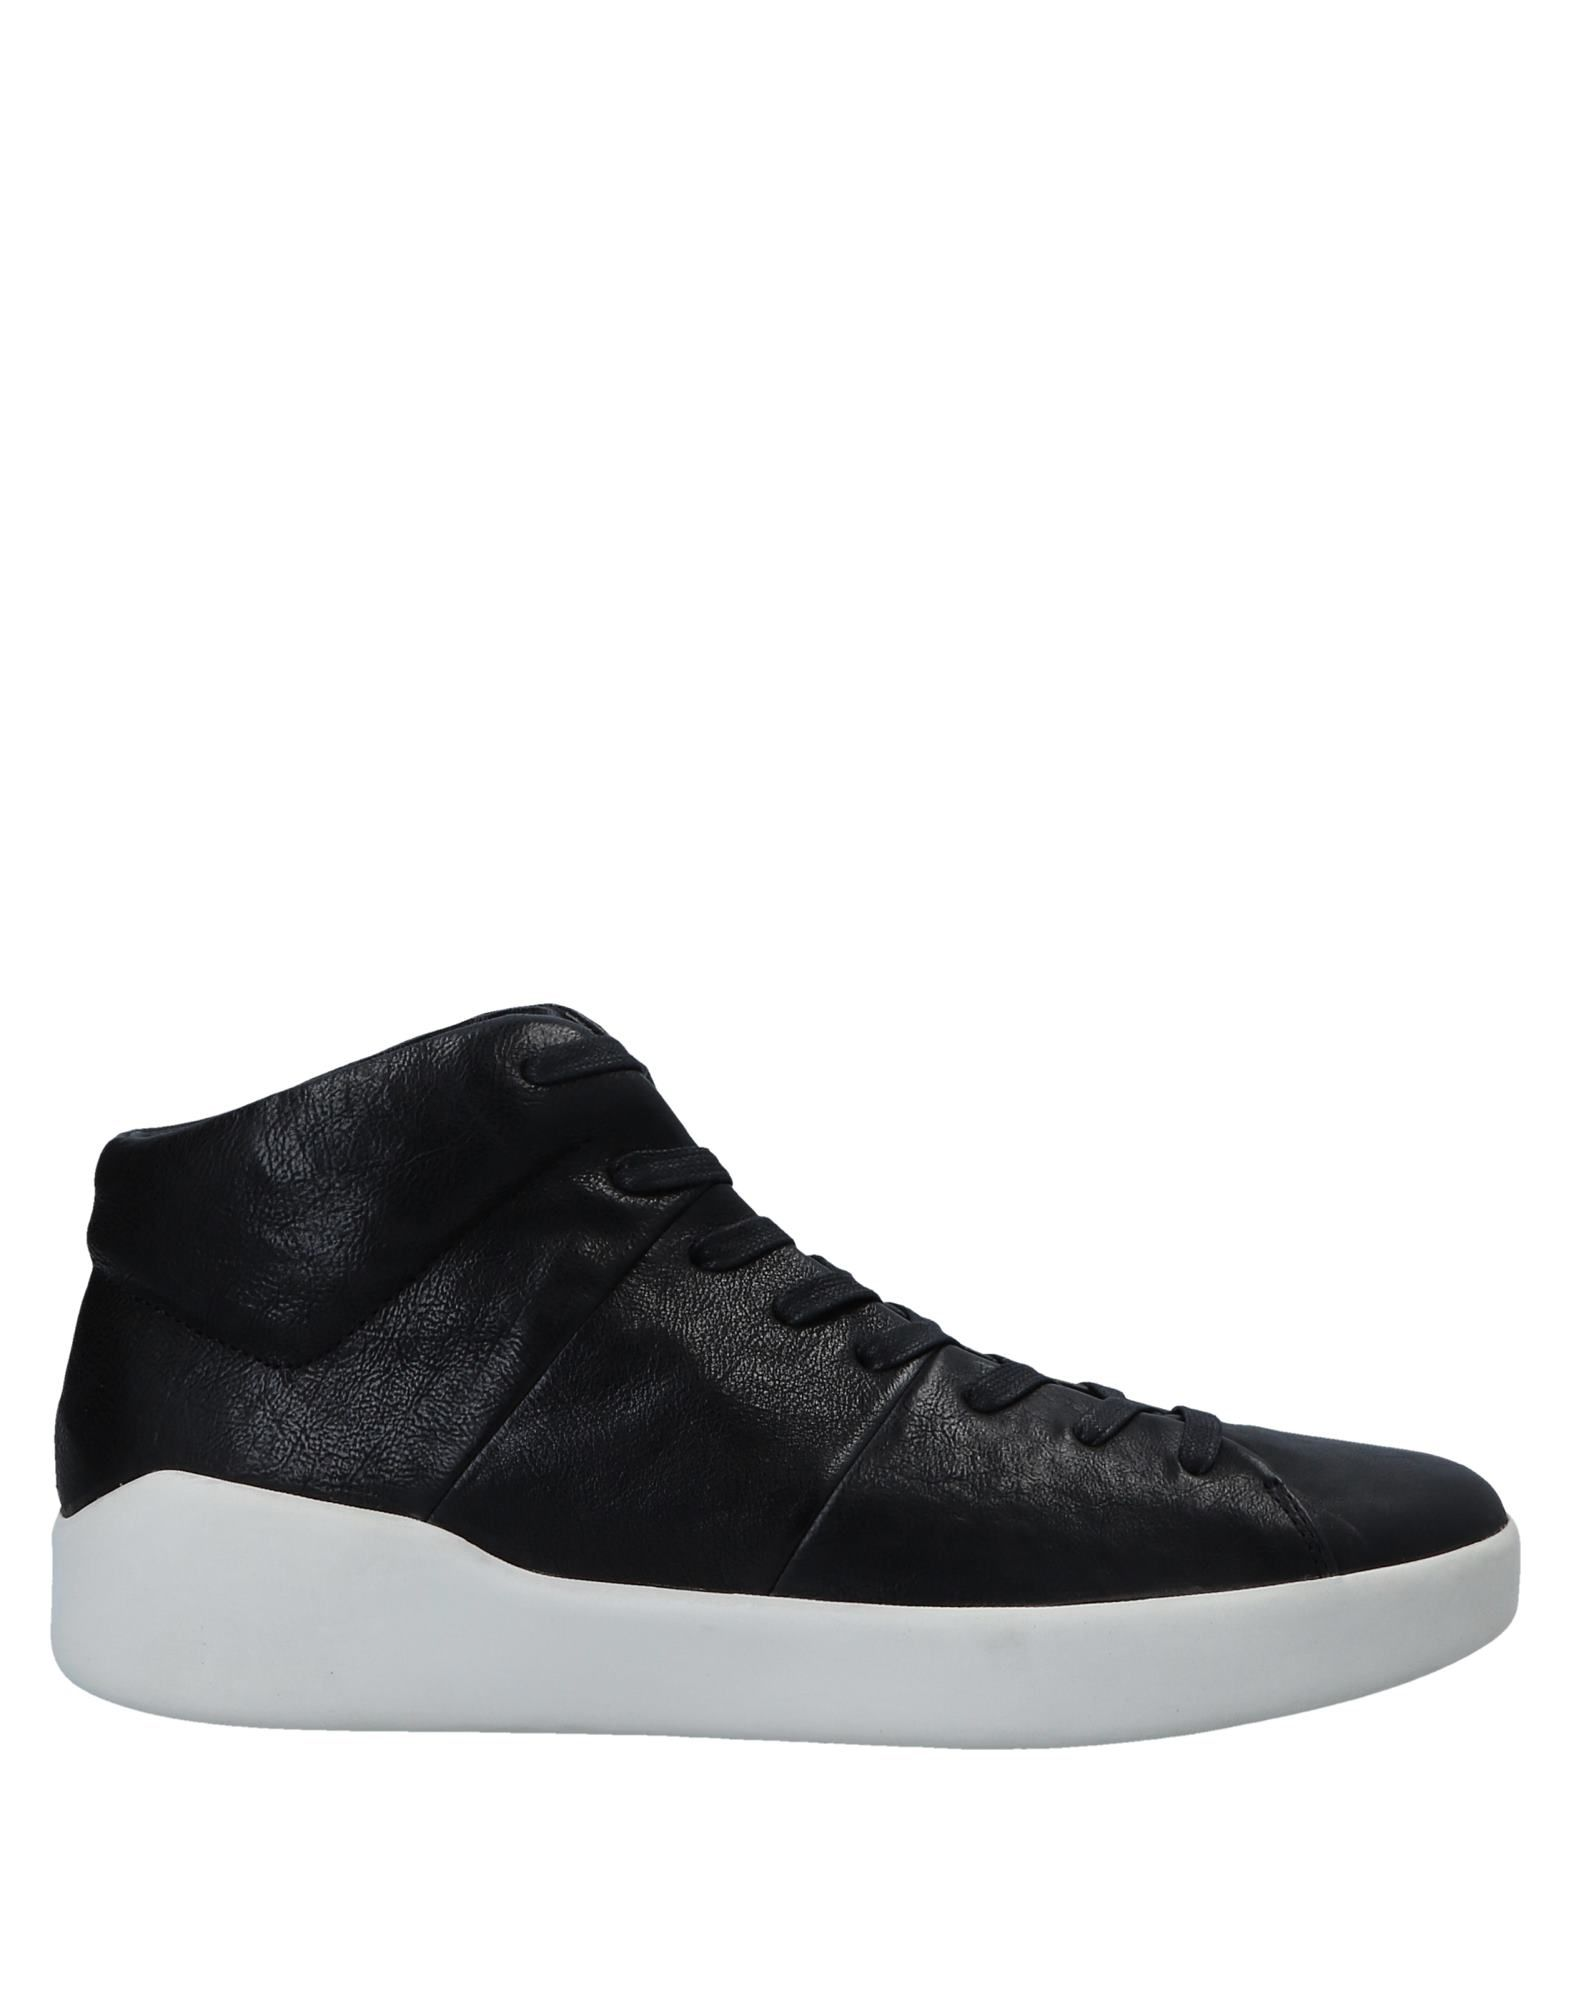 Sneakers Crime London Uomo - 11556300LP